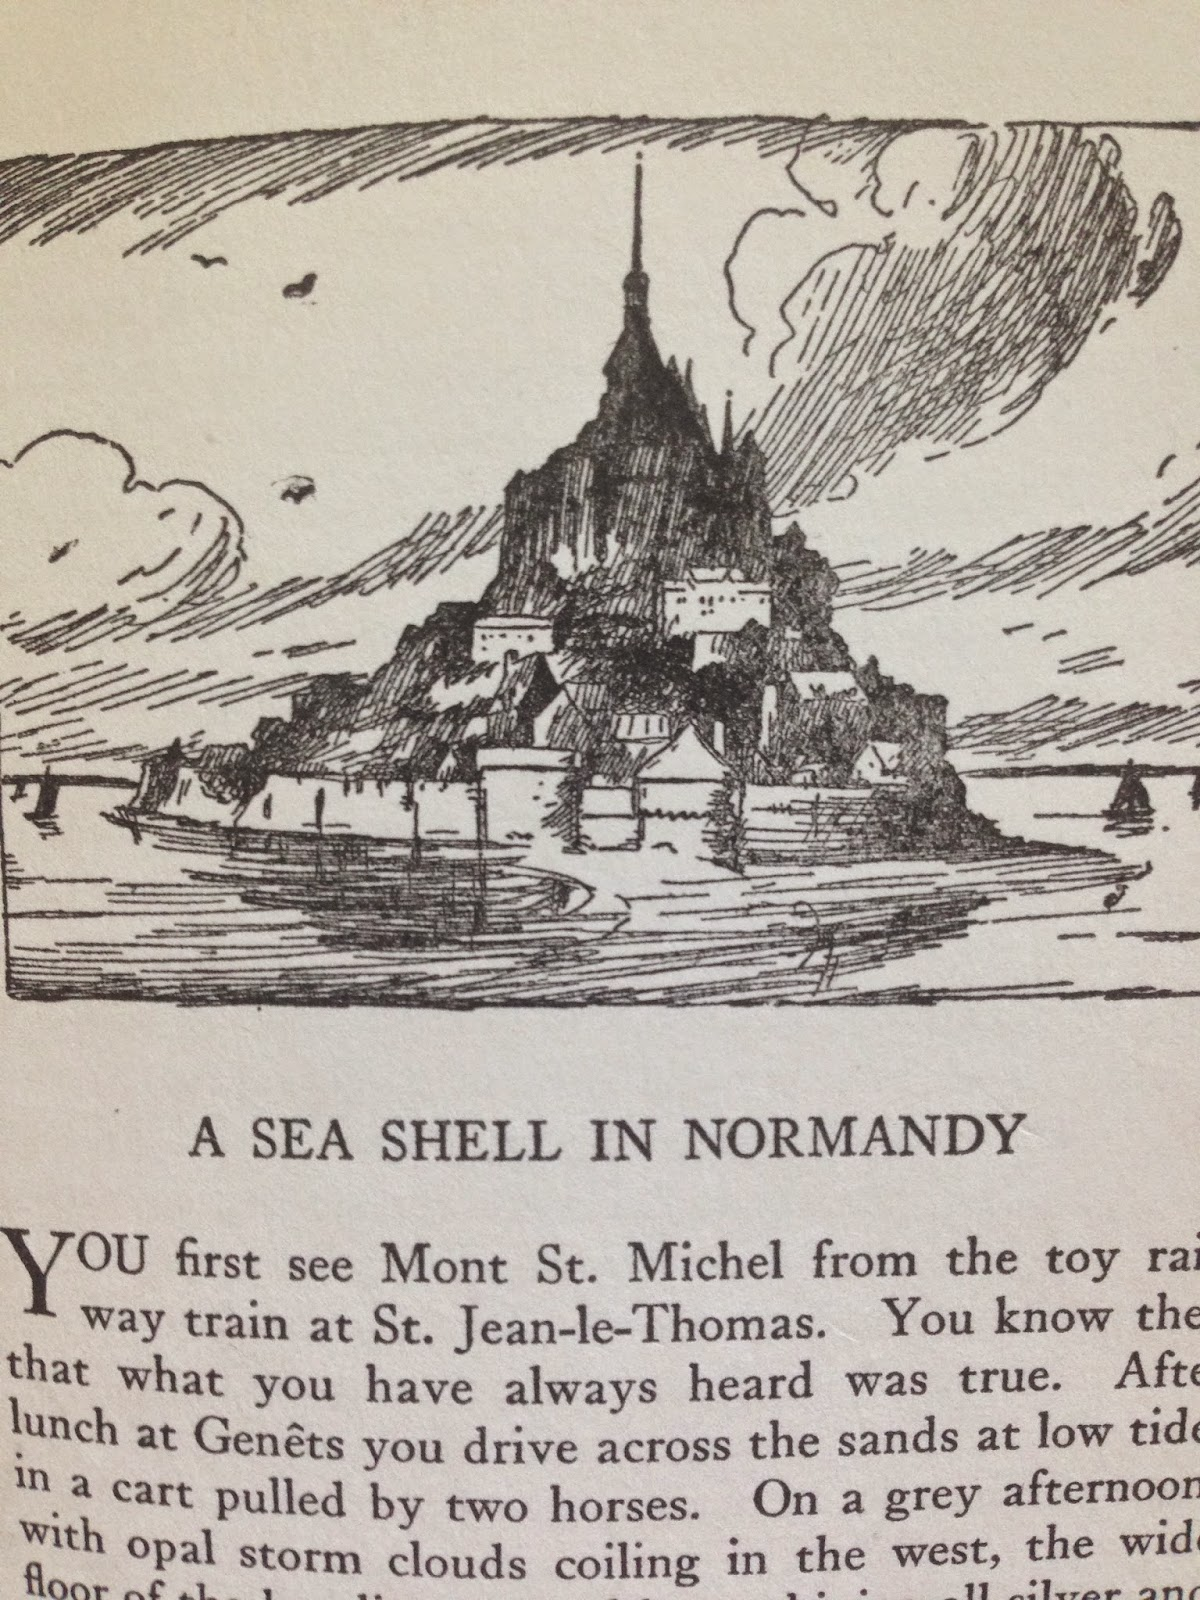 mont saint michel for earth day where nature and man s most the drawing is from an essay by christopher morely called a sea shell in normandy in the collection of his essays the r y stain which i have had